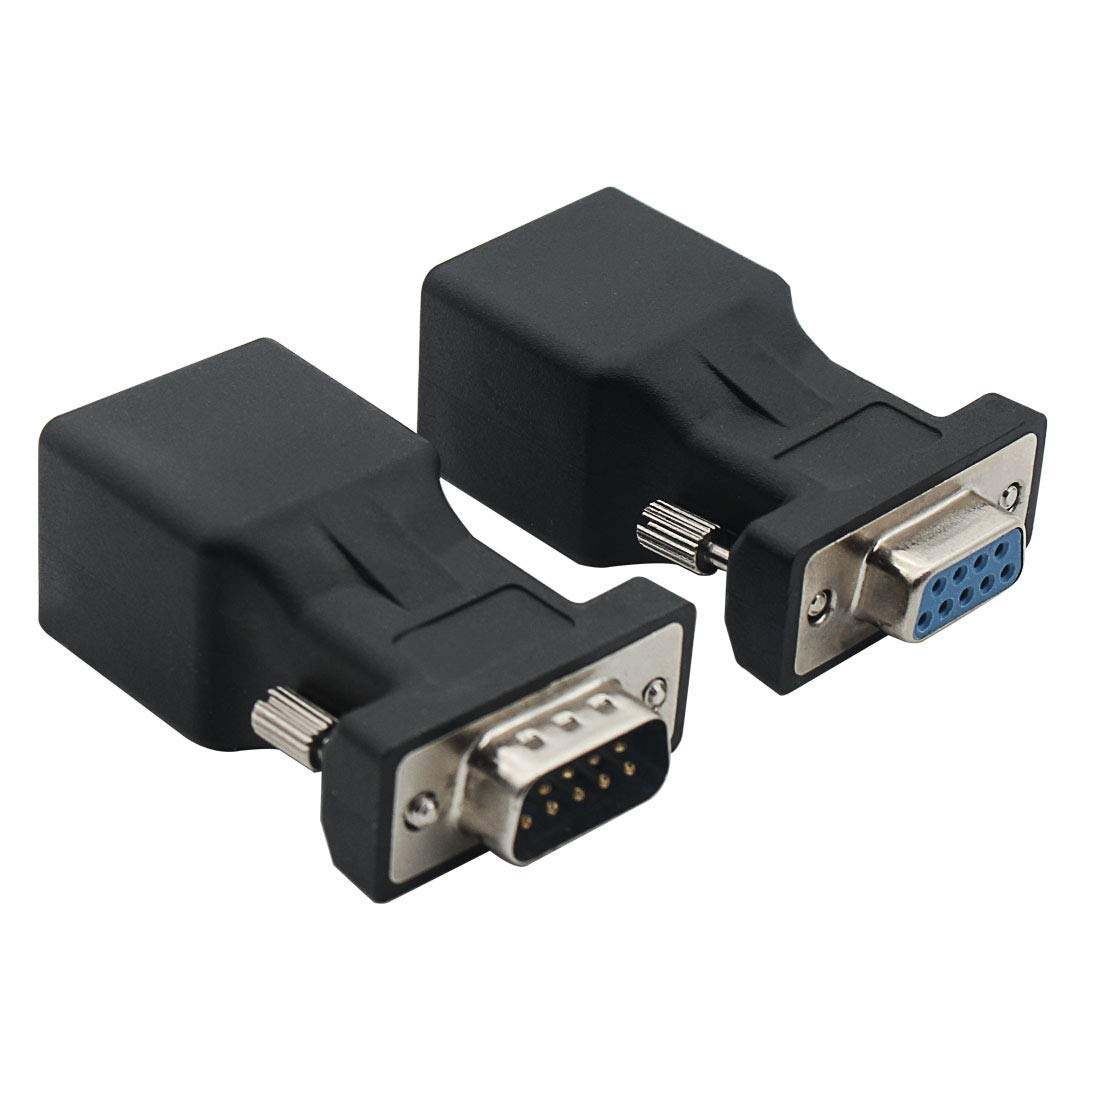 TOOGOO 1.4M RS232 DB9 9 Pin Male to VGA Video 15 Pin Male Adapter Cable Light Gray R